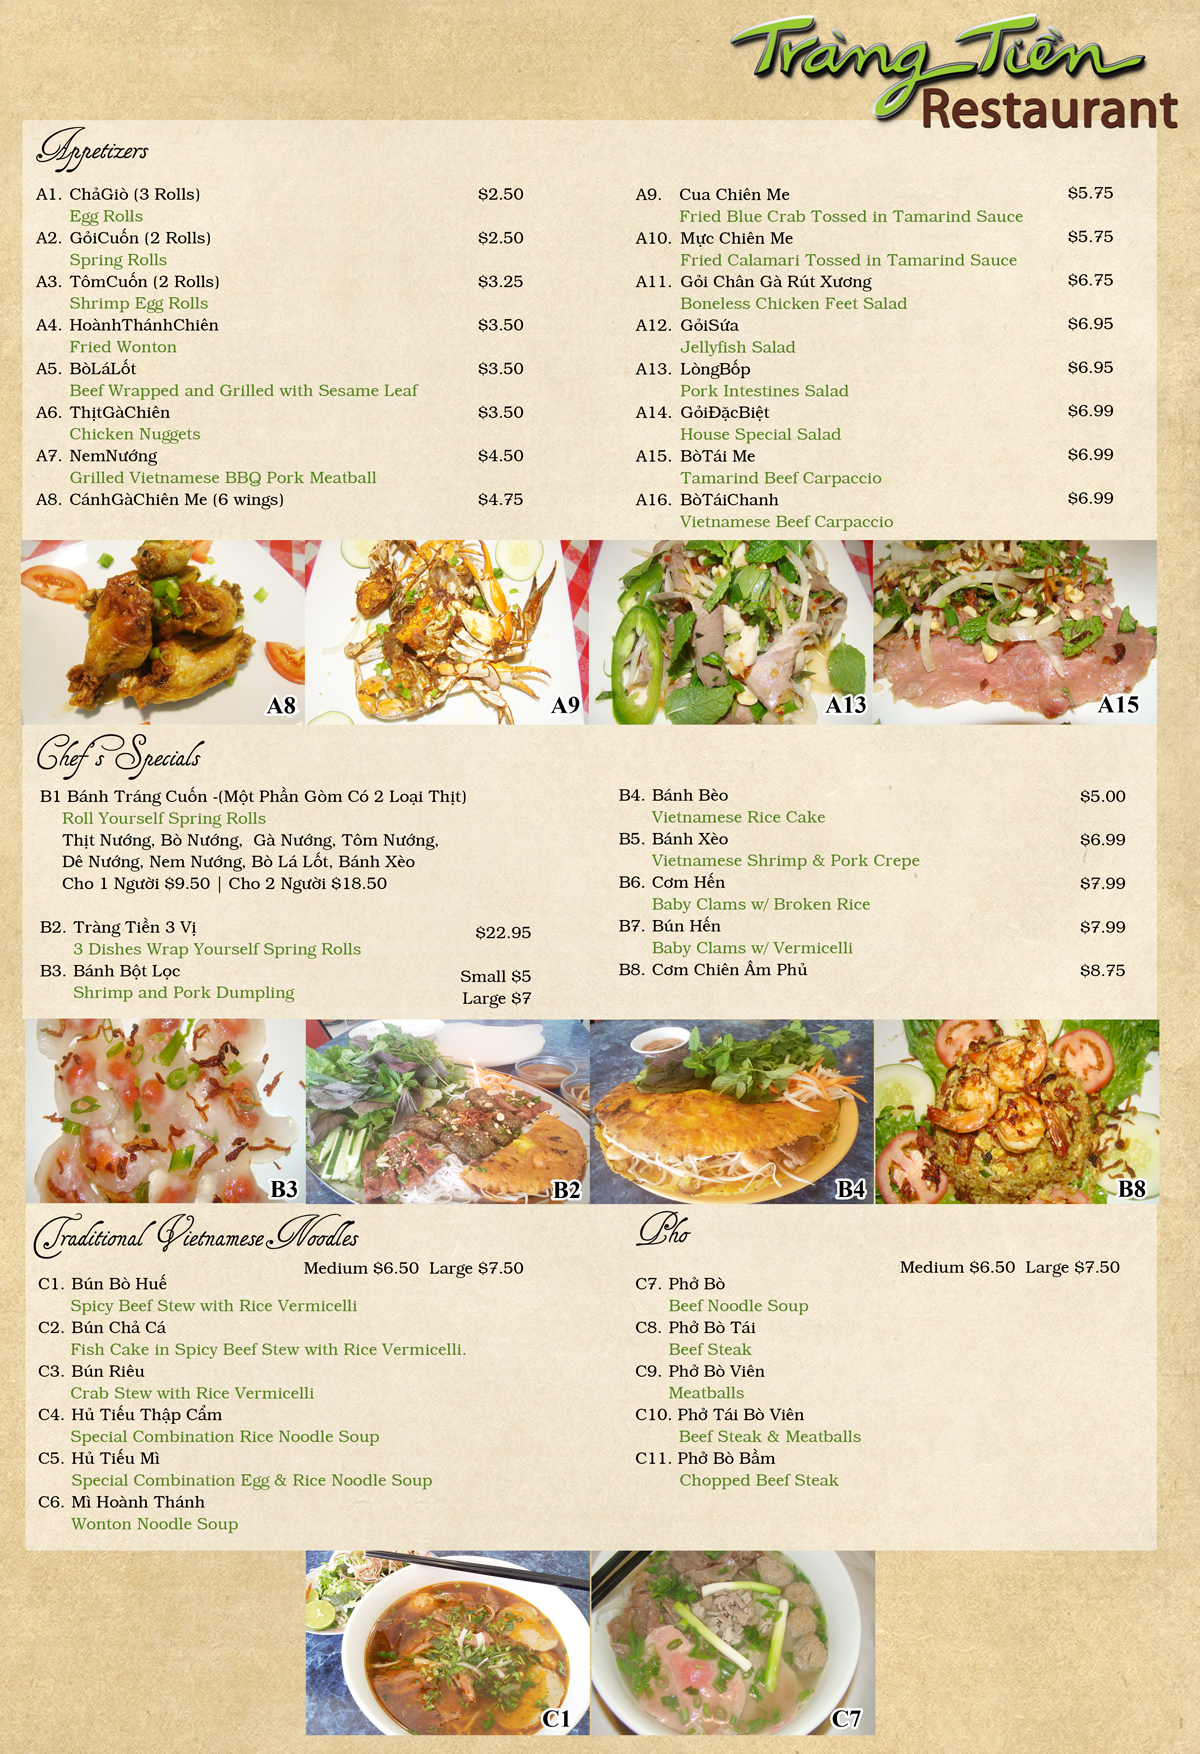 Vietnamese food trang tien vietnamese restaurant groupon for Table 52 restaurant week menu 2013